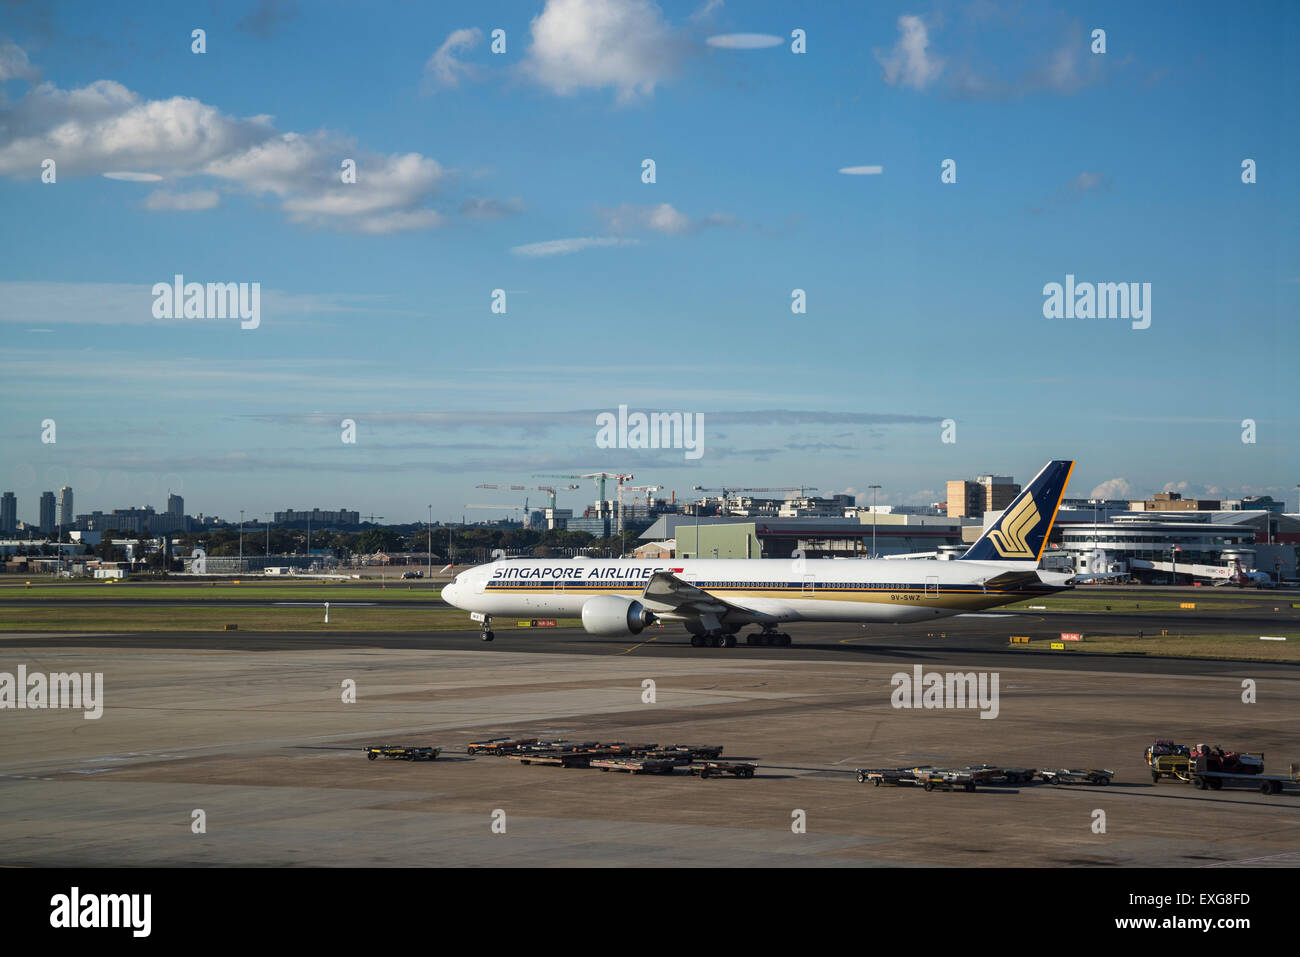 Sydney airport singapore airlines australia stock photo for Singapore airlines sito italiano